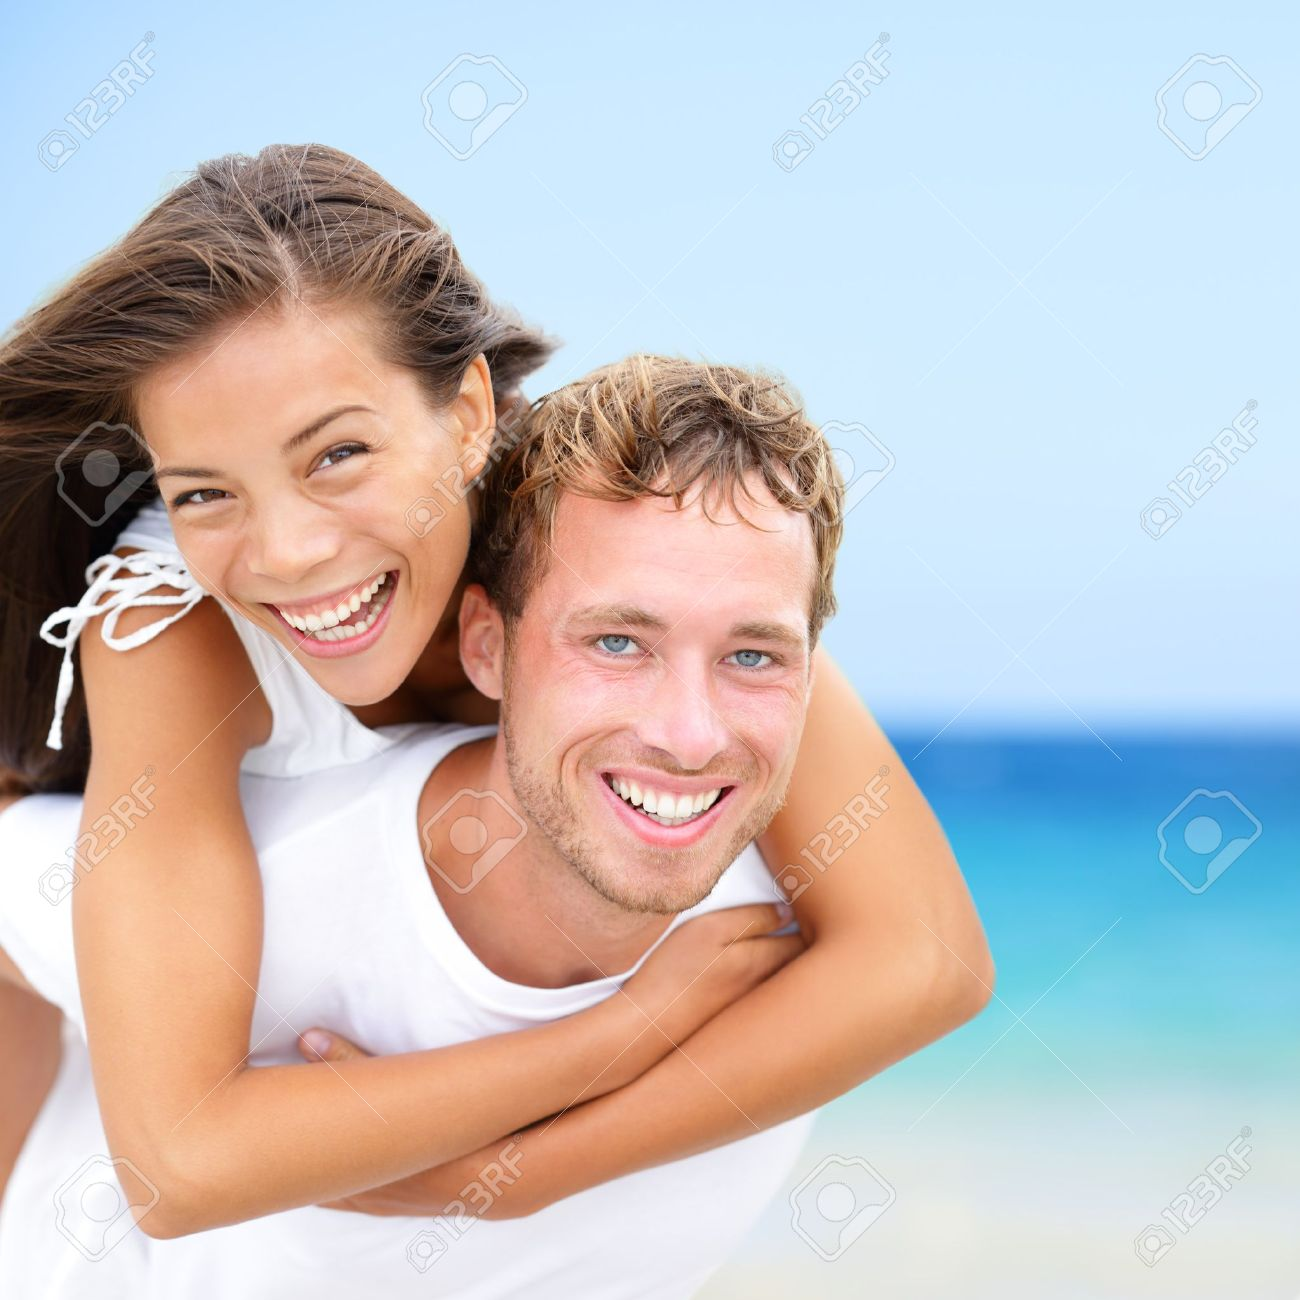 Happy couple on beach fun summer vacation  Multiracial Young newlywed couple piggybacking smiling joyful elated in happiness concept on tropical beach with blue water, sky  Asian woman, Caucasian man Stock Photo - 18969026